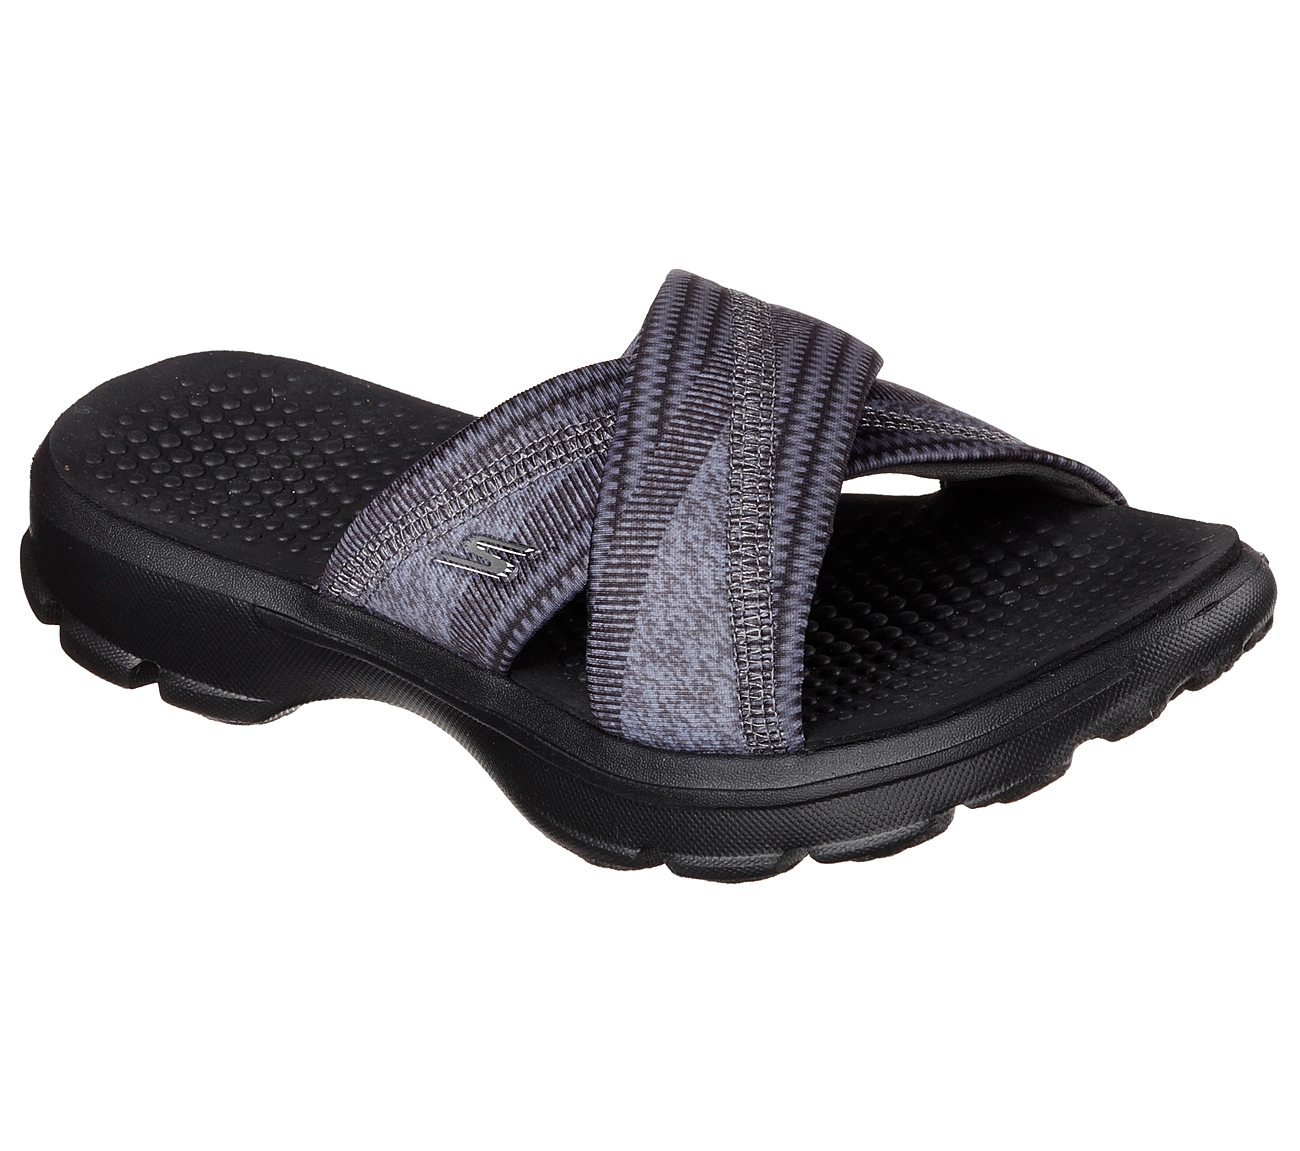 Buy Skechers Skechers Gowalk 3 Mellow Skechers On The Go Shoes